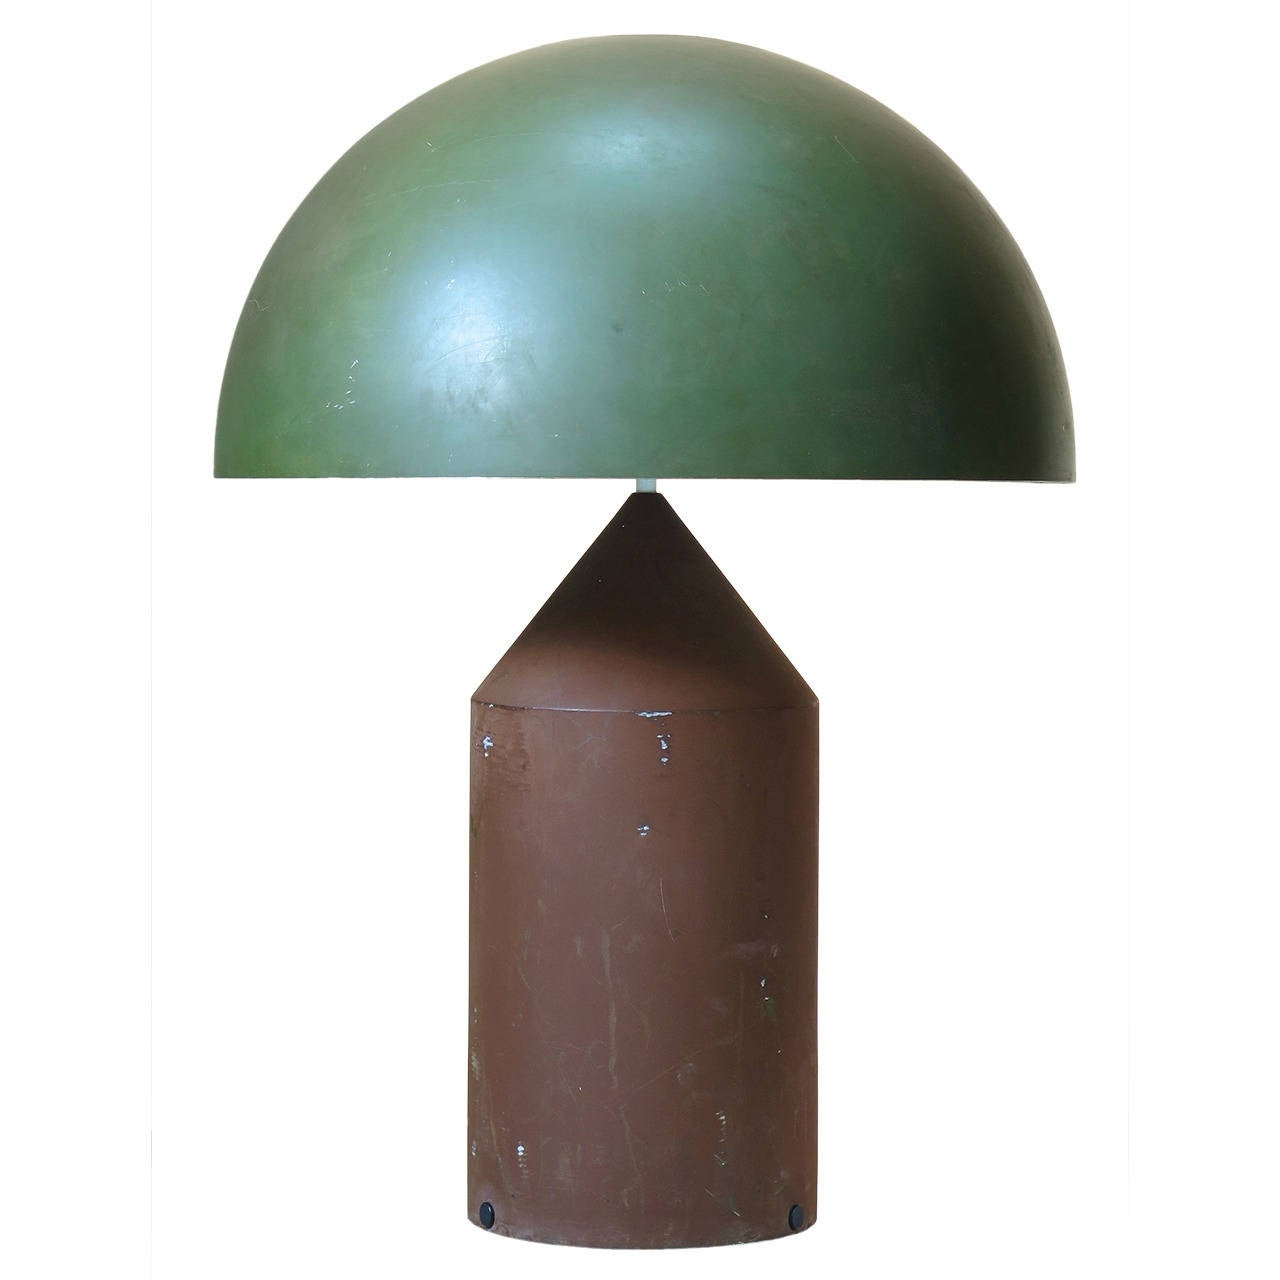 Rare Two-Tone Atollo Lamp by Vico Magistretti for O Luce